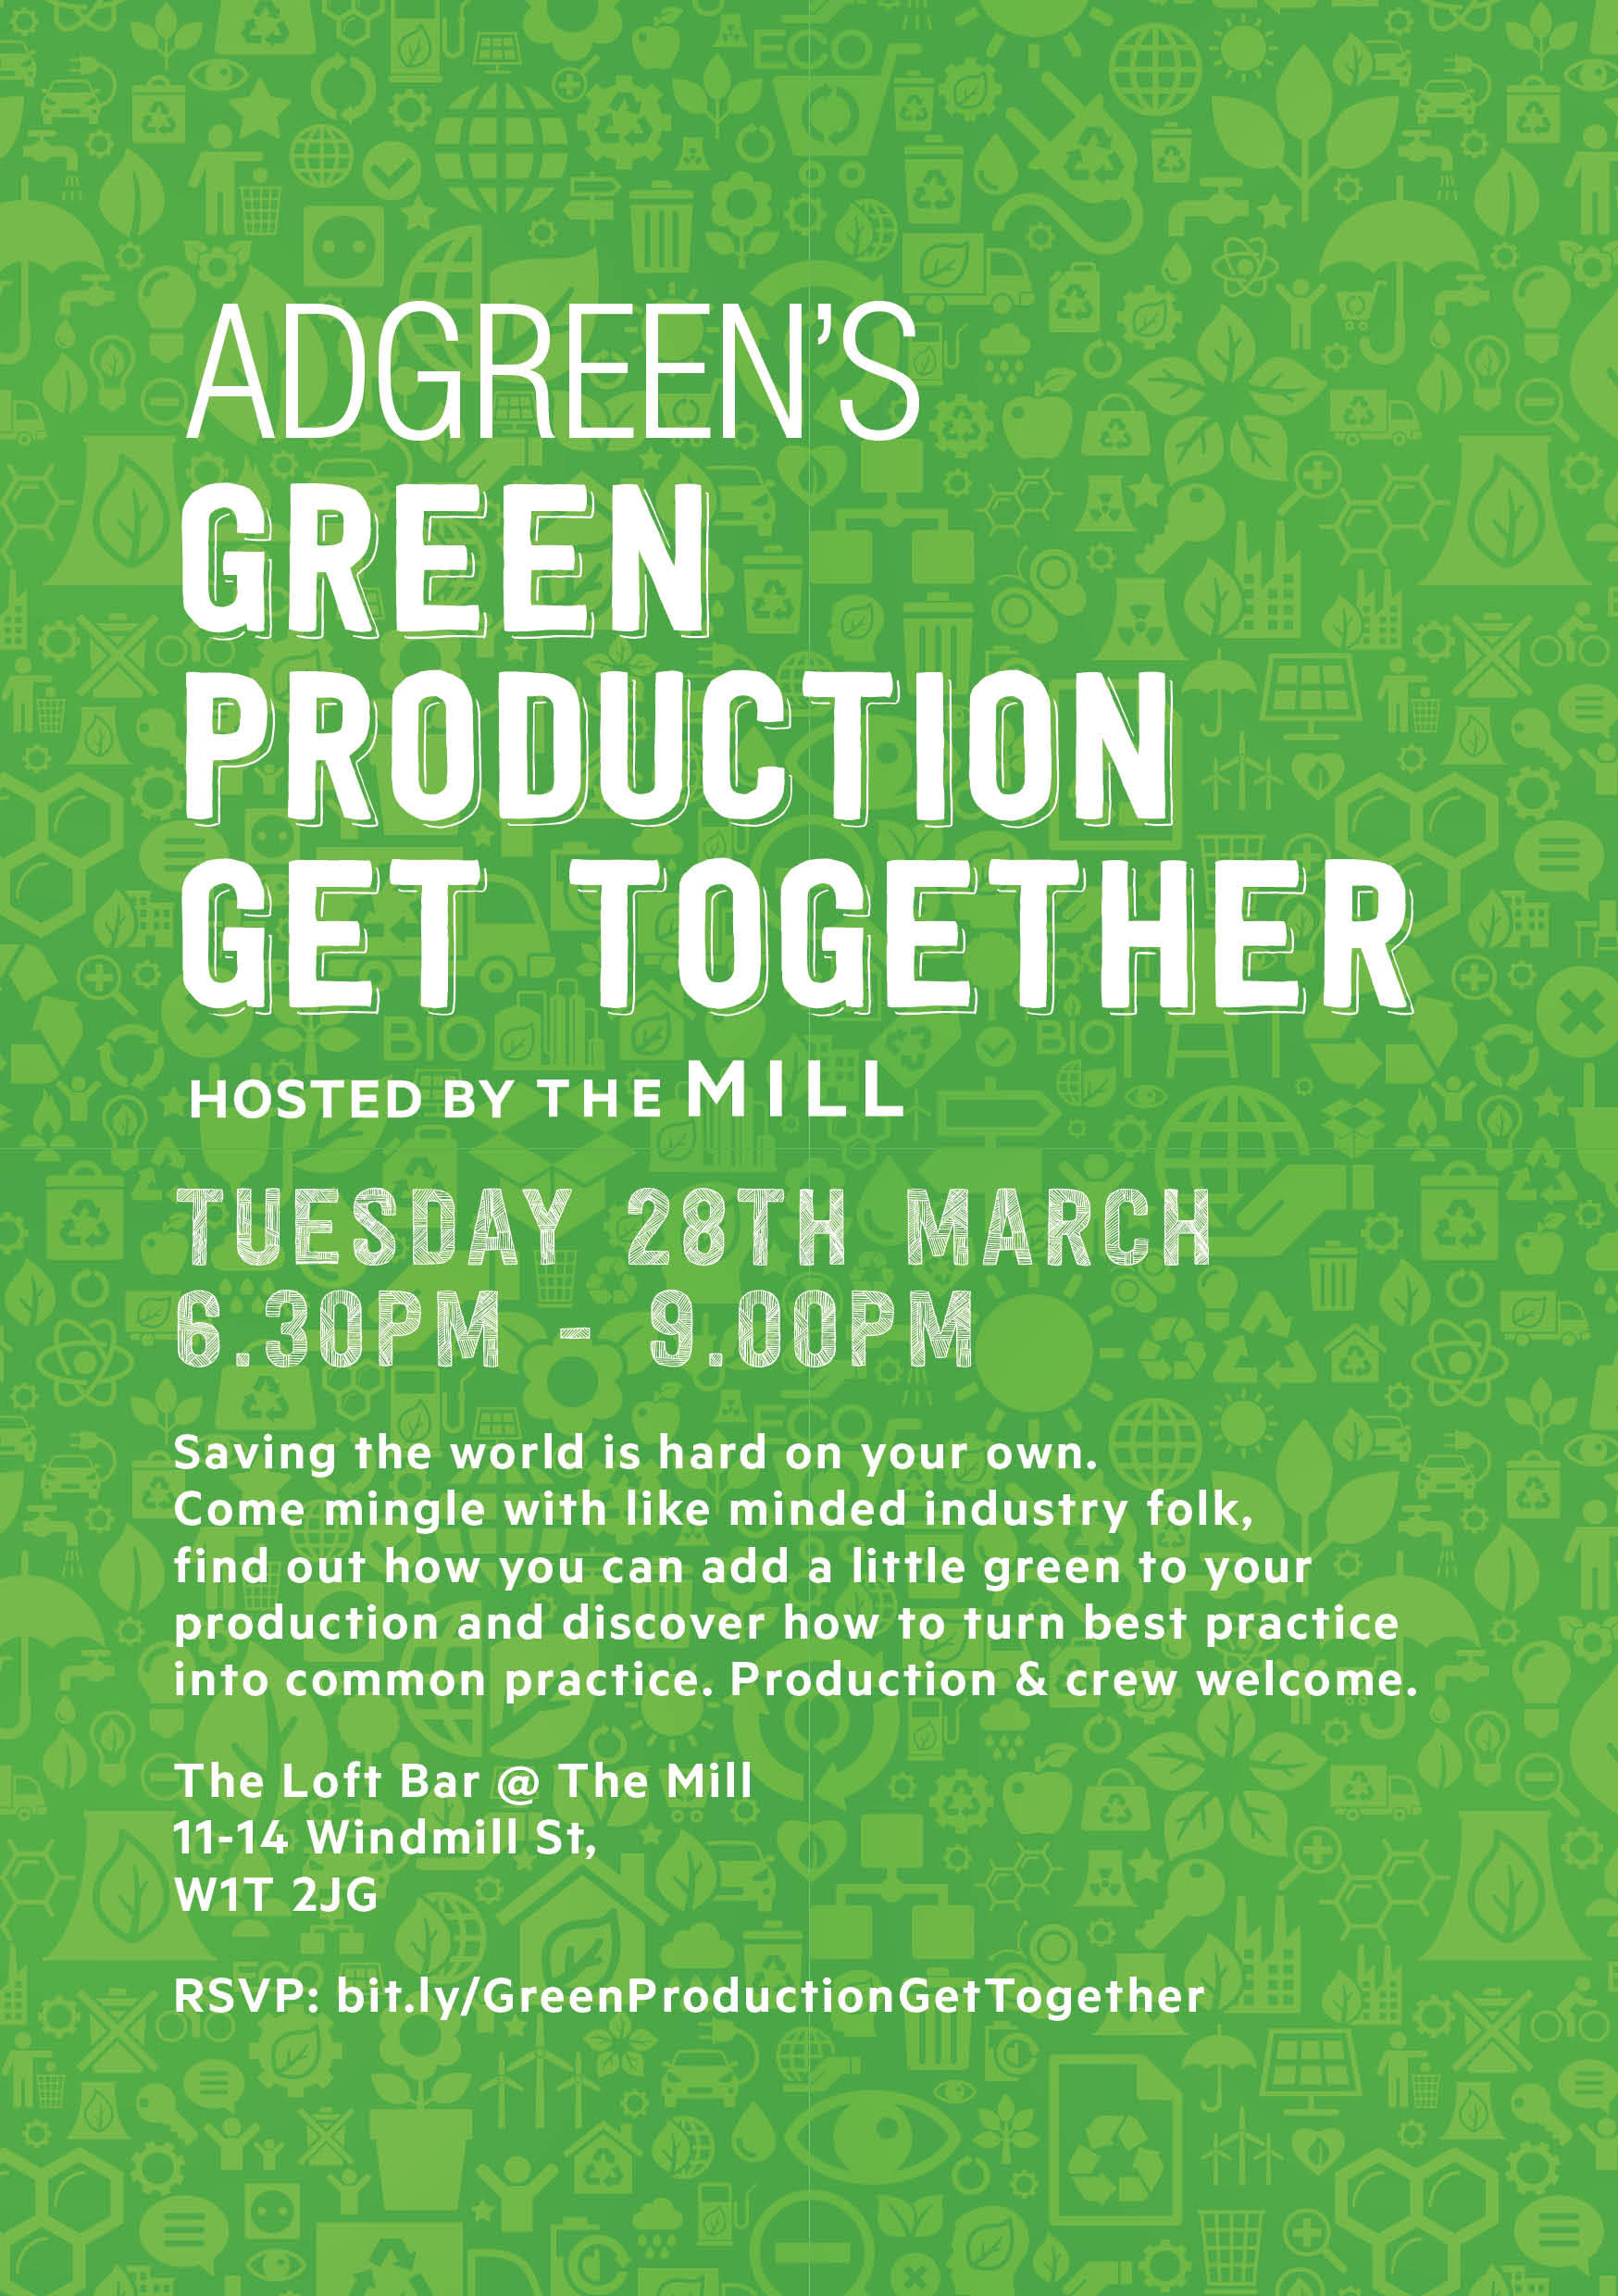 Green Production Get Together! Saving the world is hard on your own. Come mingle with like minded industry folk, find out how you can add a little green to your production and discover how to turn best practice into common practice...